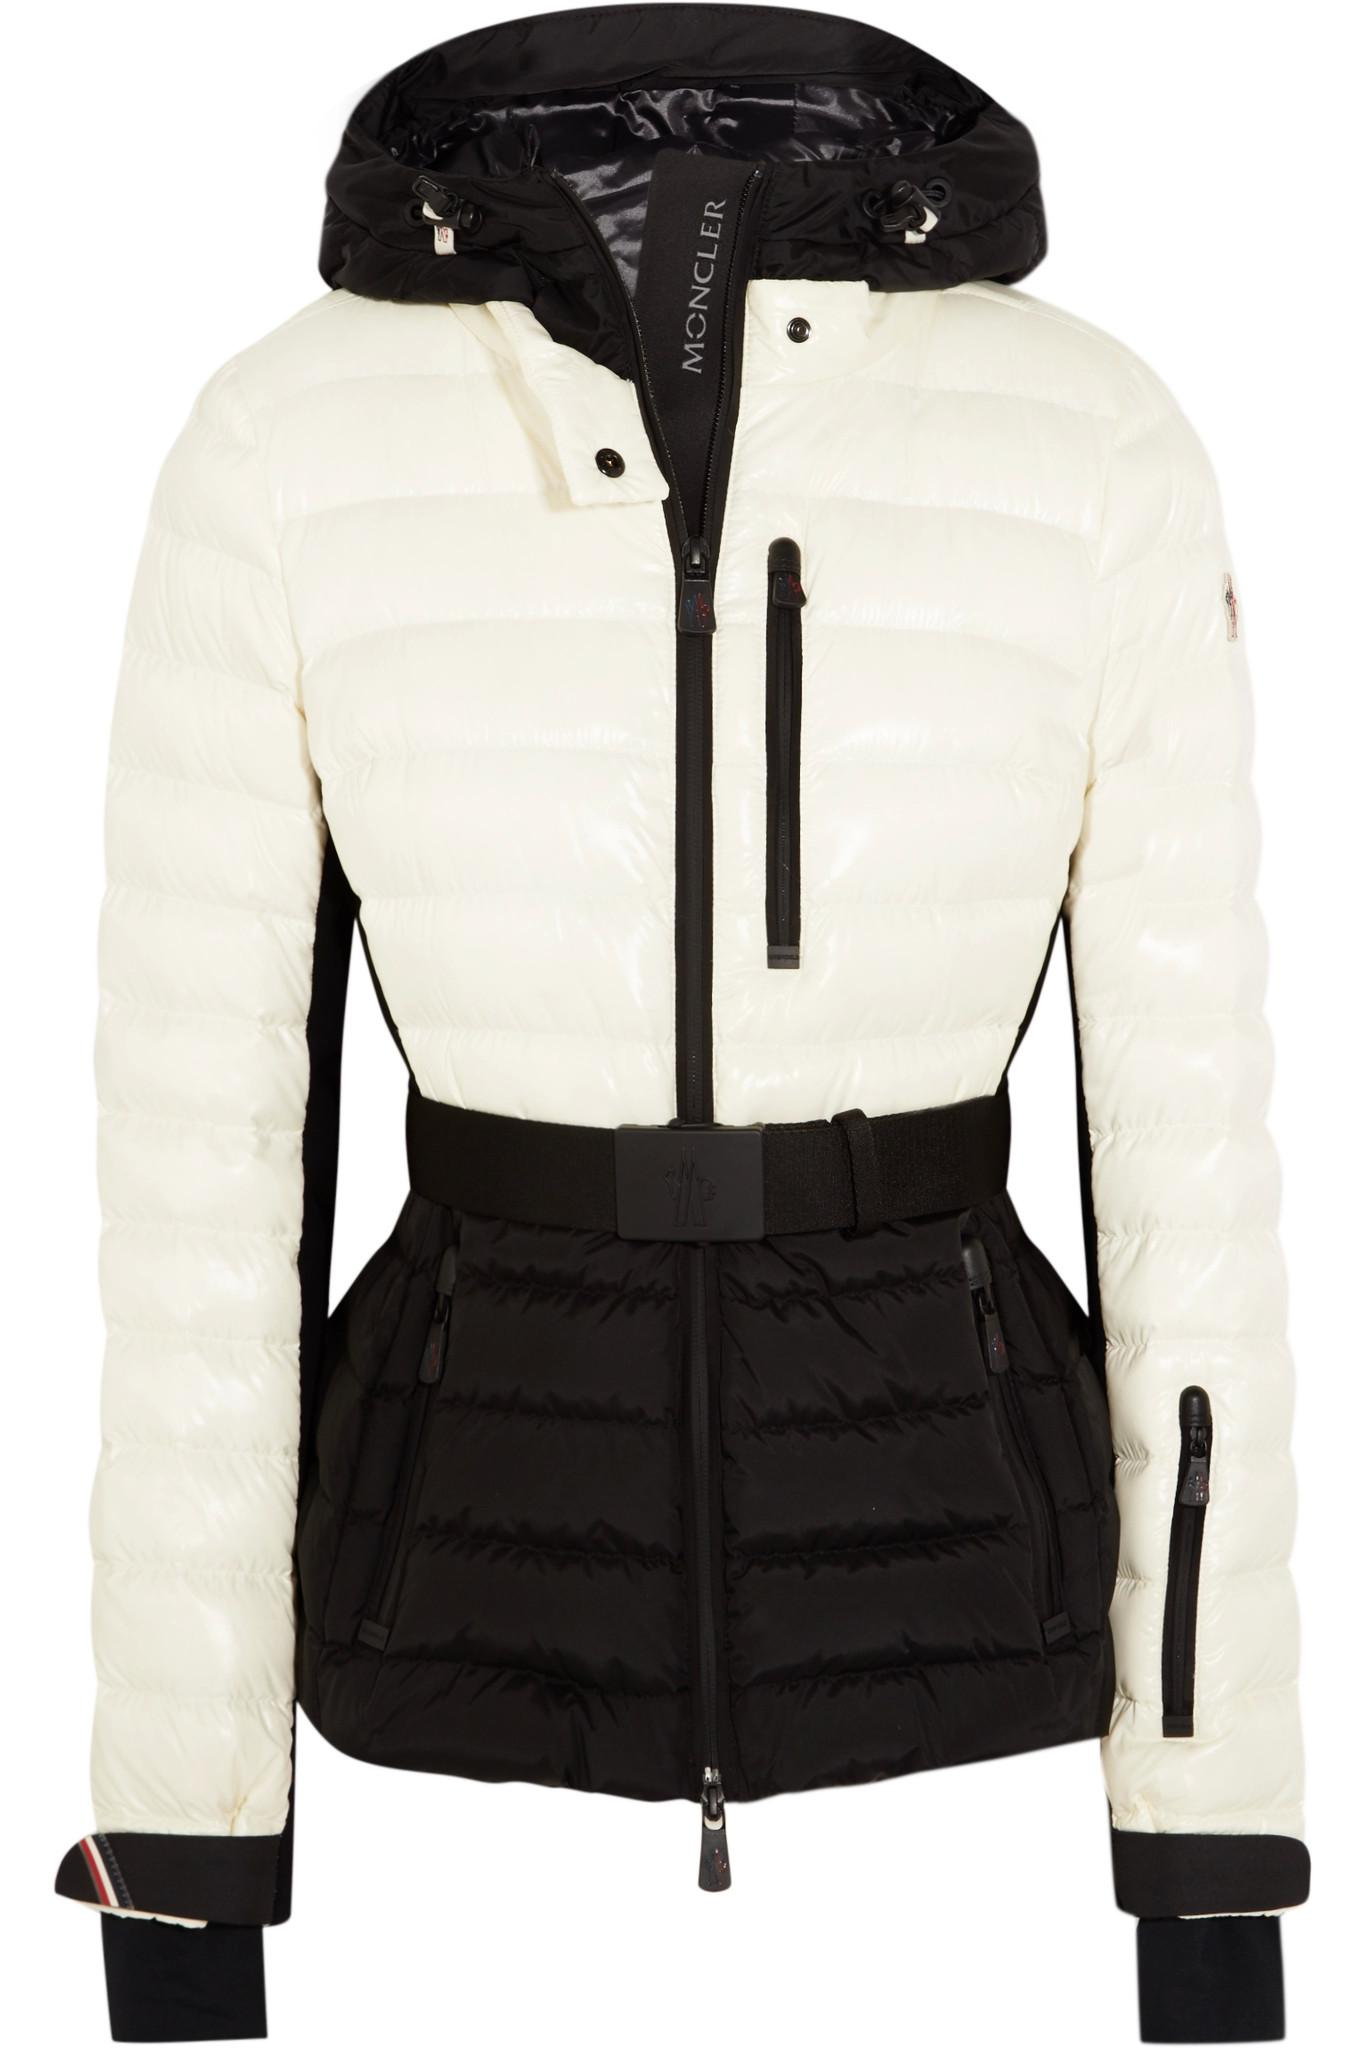 moncler black and white ski jacket